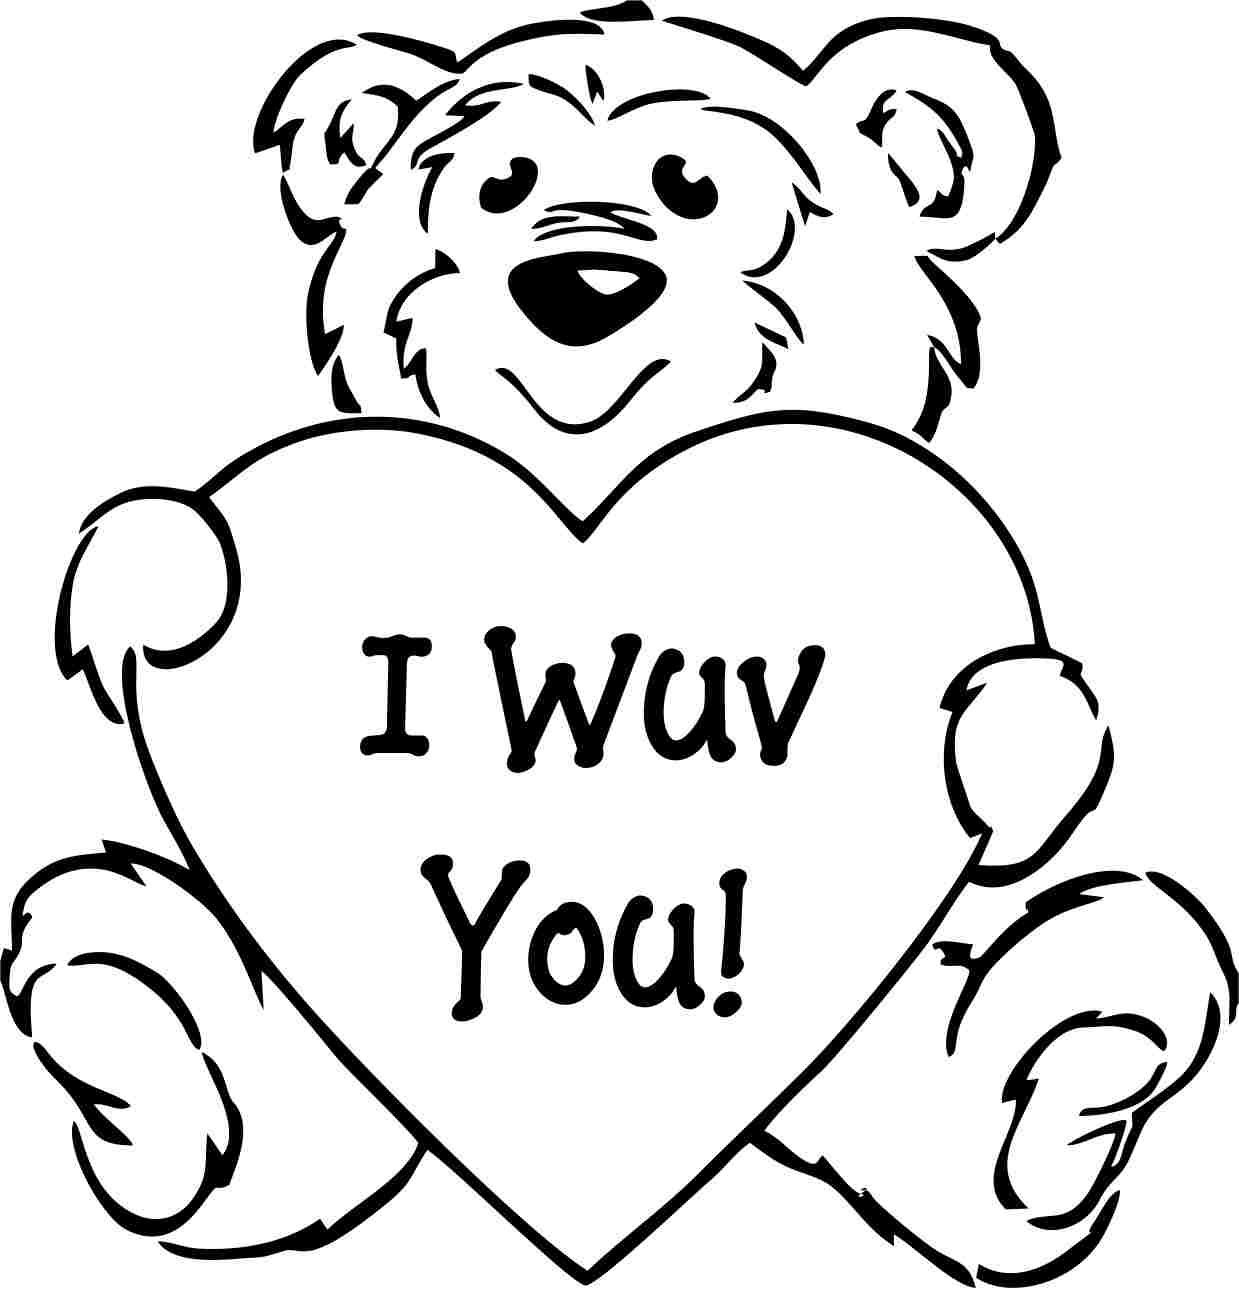 image regarding Free Printable Valentines Day Coloring Pages named No cost Coloring Webpages For Valentines Working day In the direction of Print at